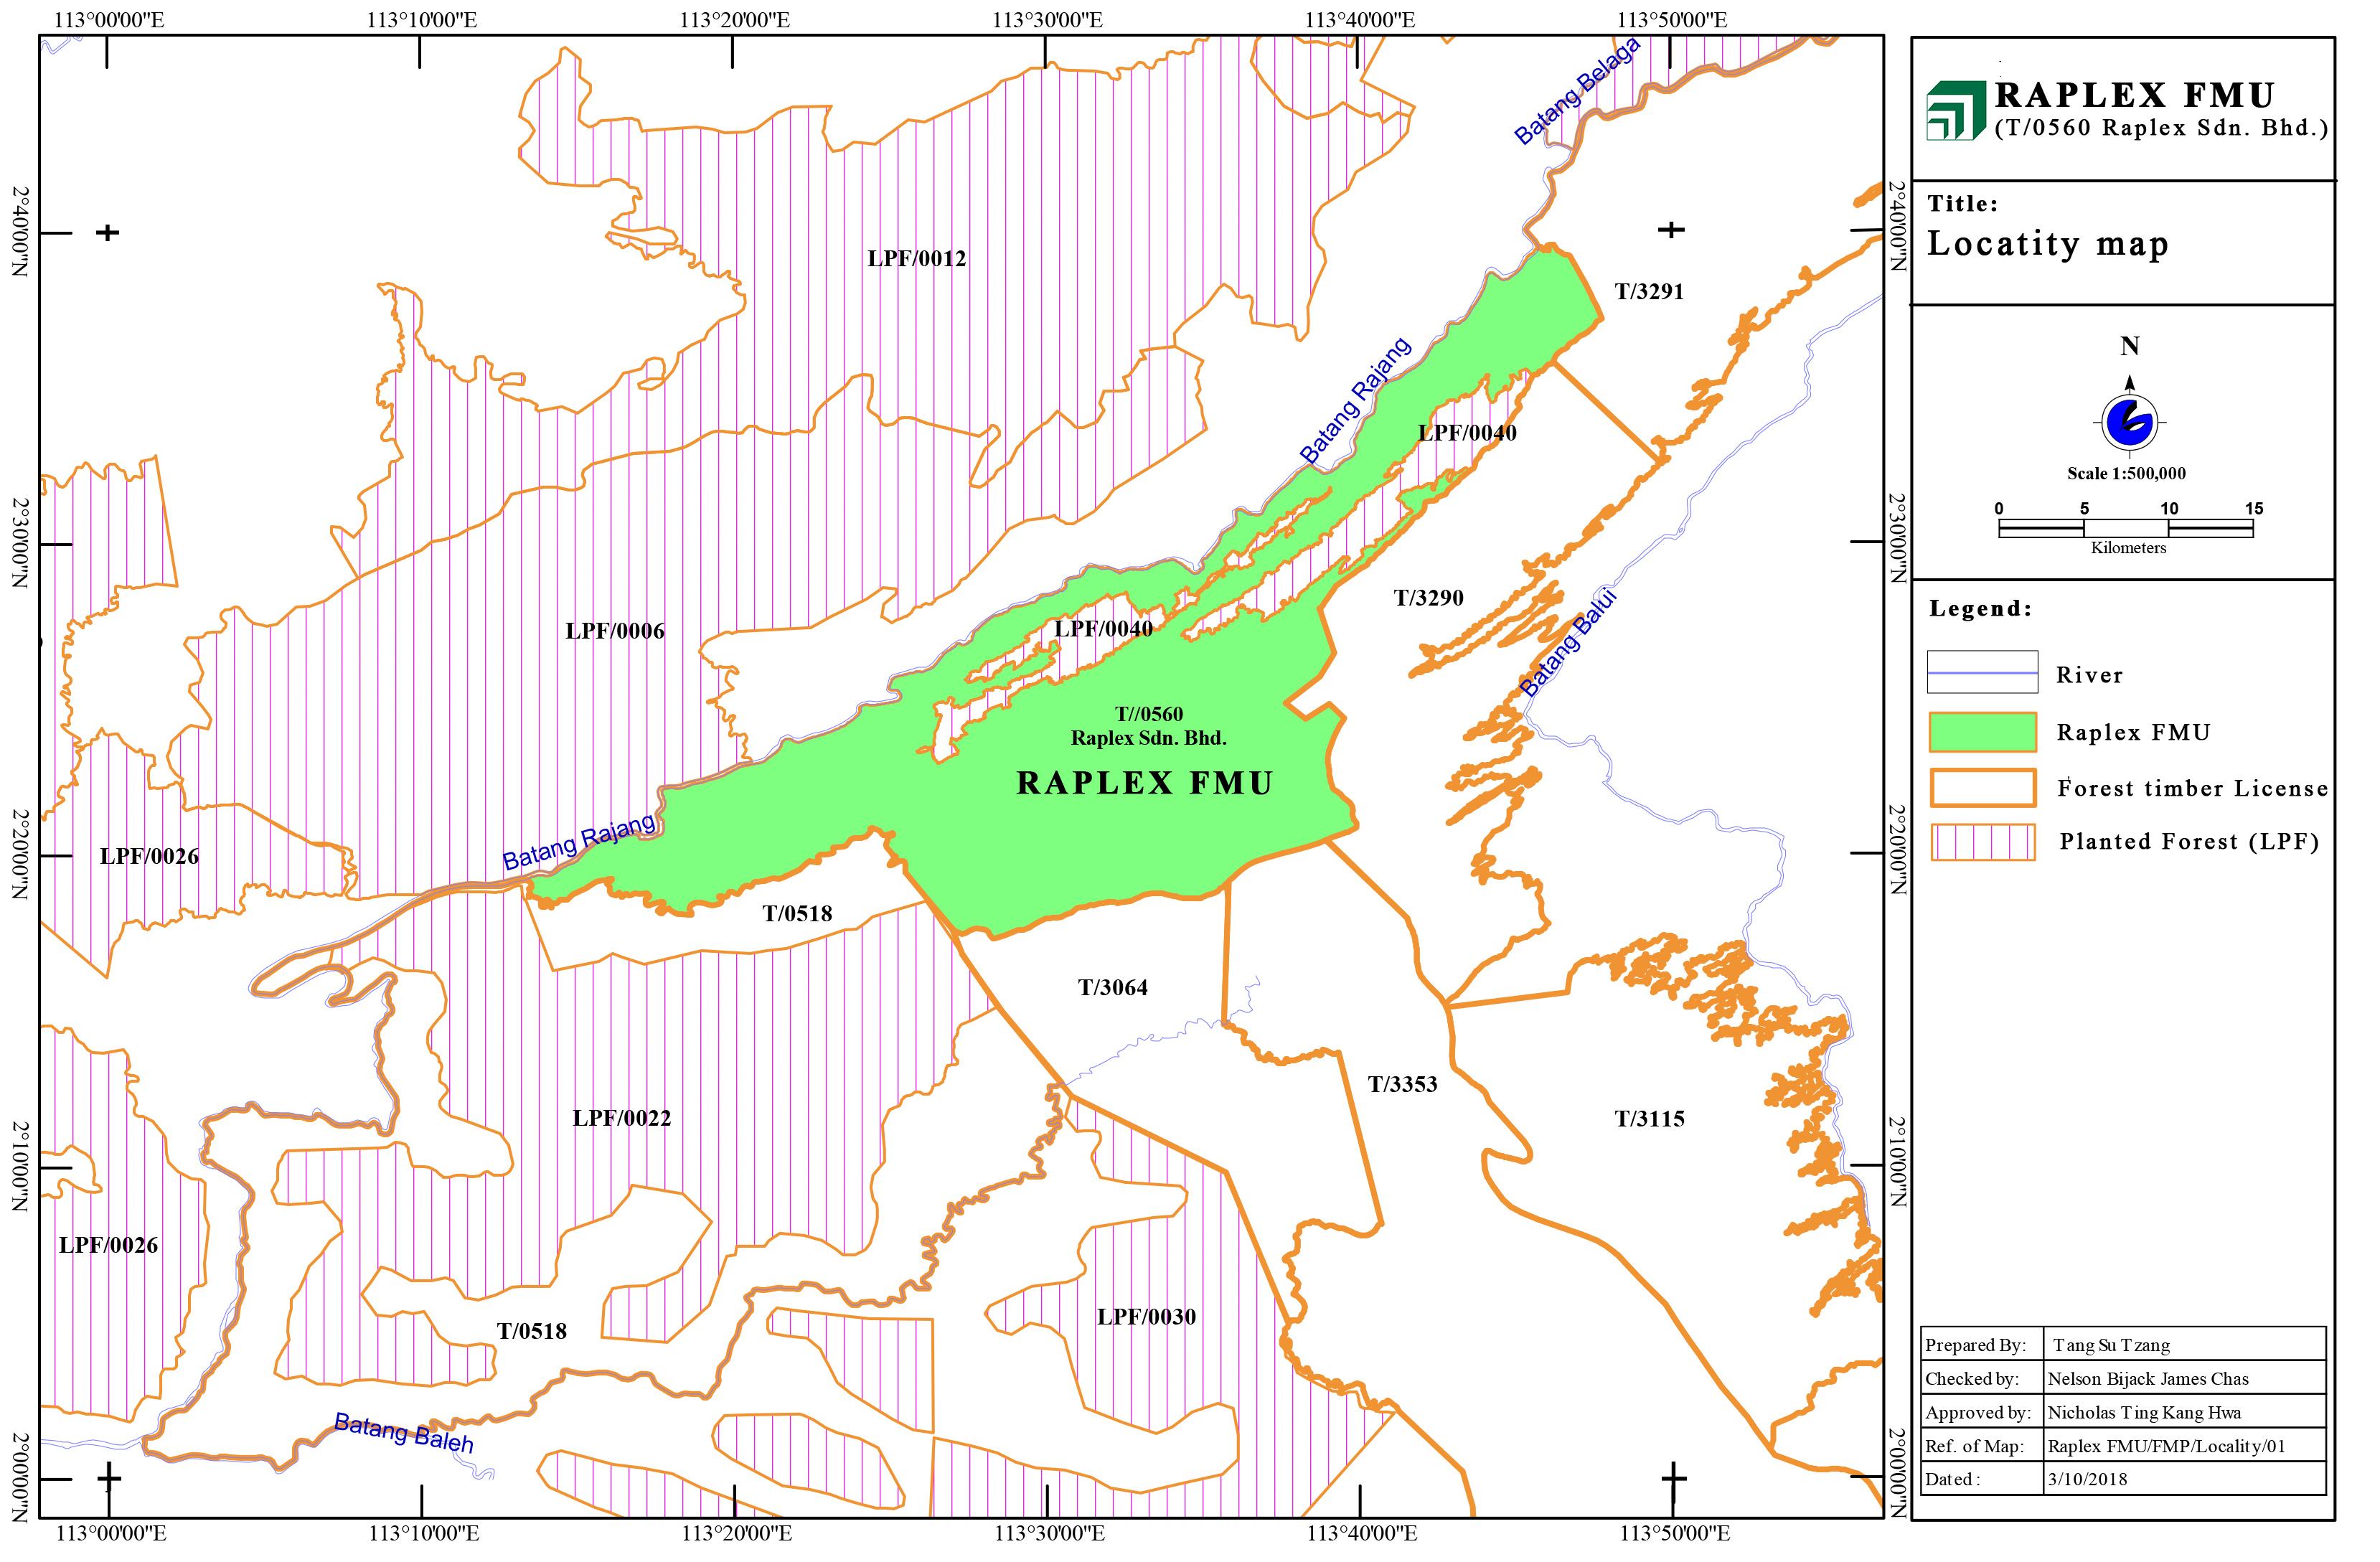 Forest Management Plan – Raplex FMU